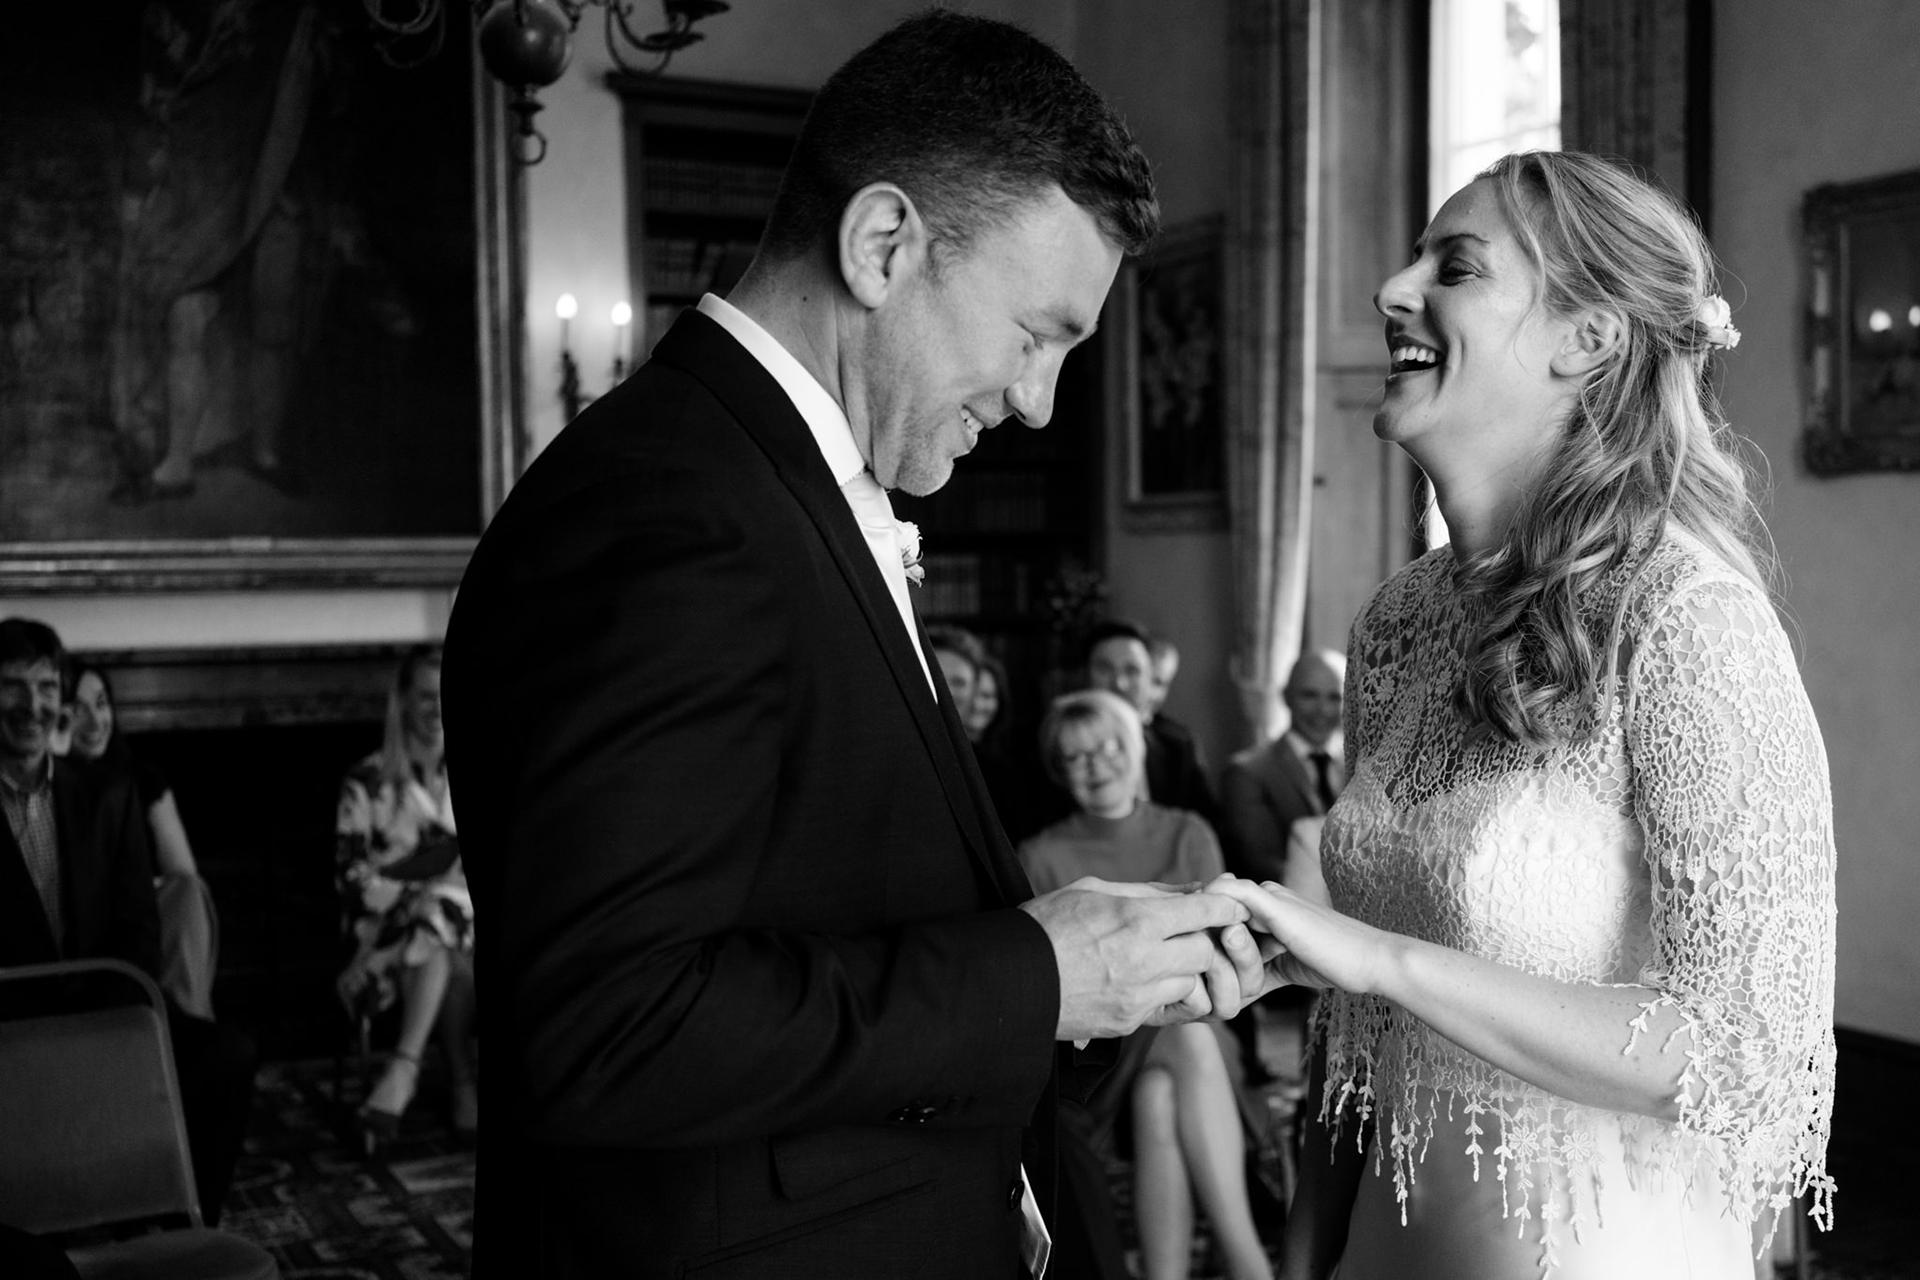 Devon Wedding Ceremony Photographer | the bride smiles and laughs as the groom puts her ring on her finger